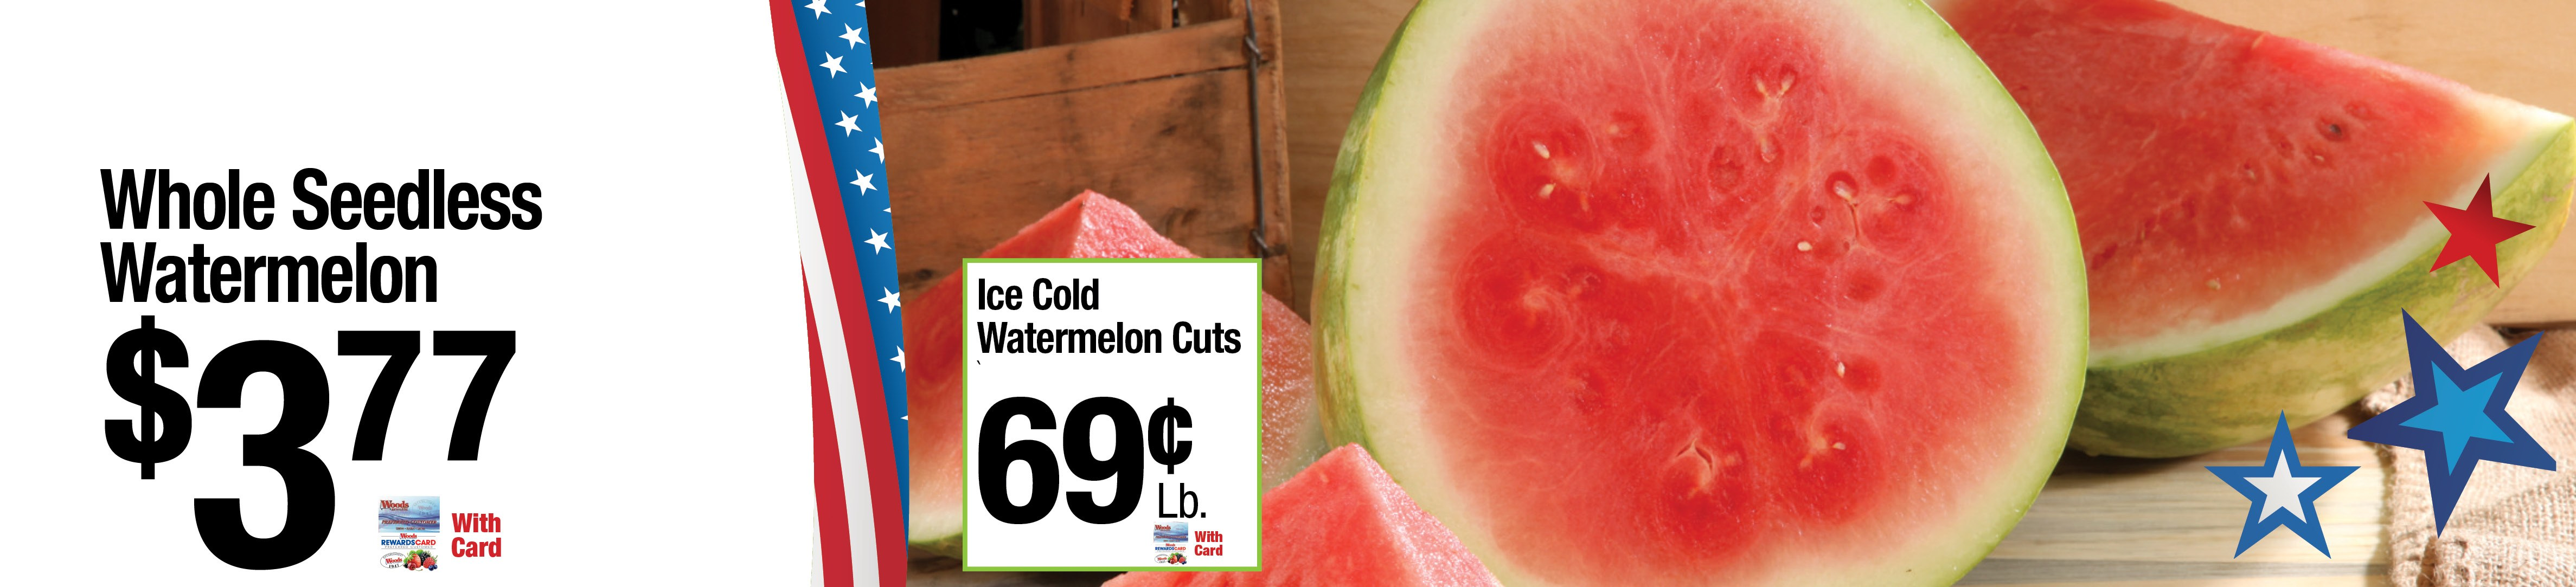 Whole Seedless Watermellon $3.77